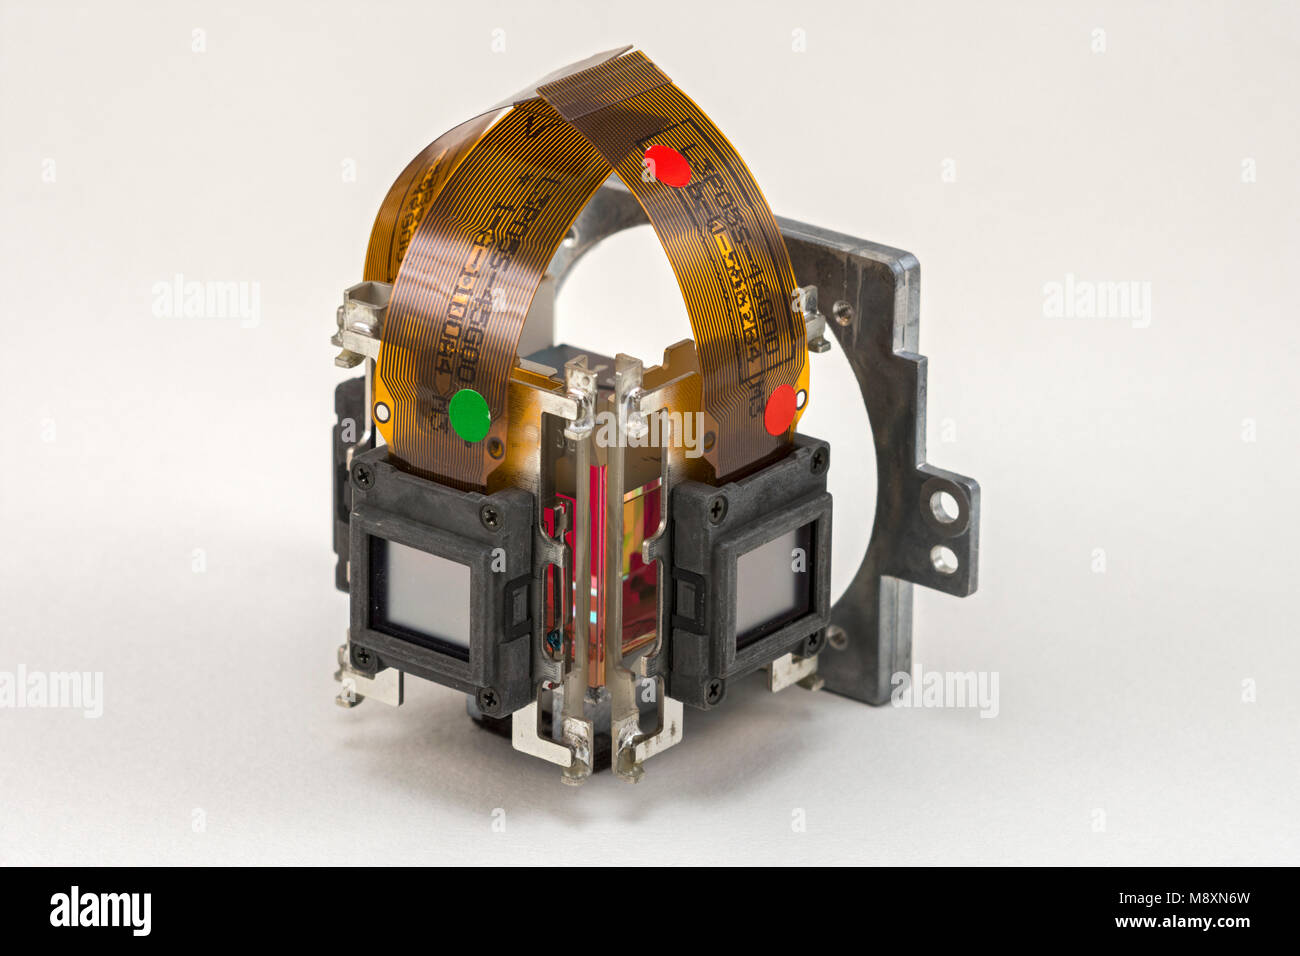 The LCD panels on the dichroic prism assembly of a digital projector.  Showing the green and red channels. - Stock Image